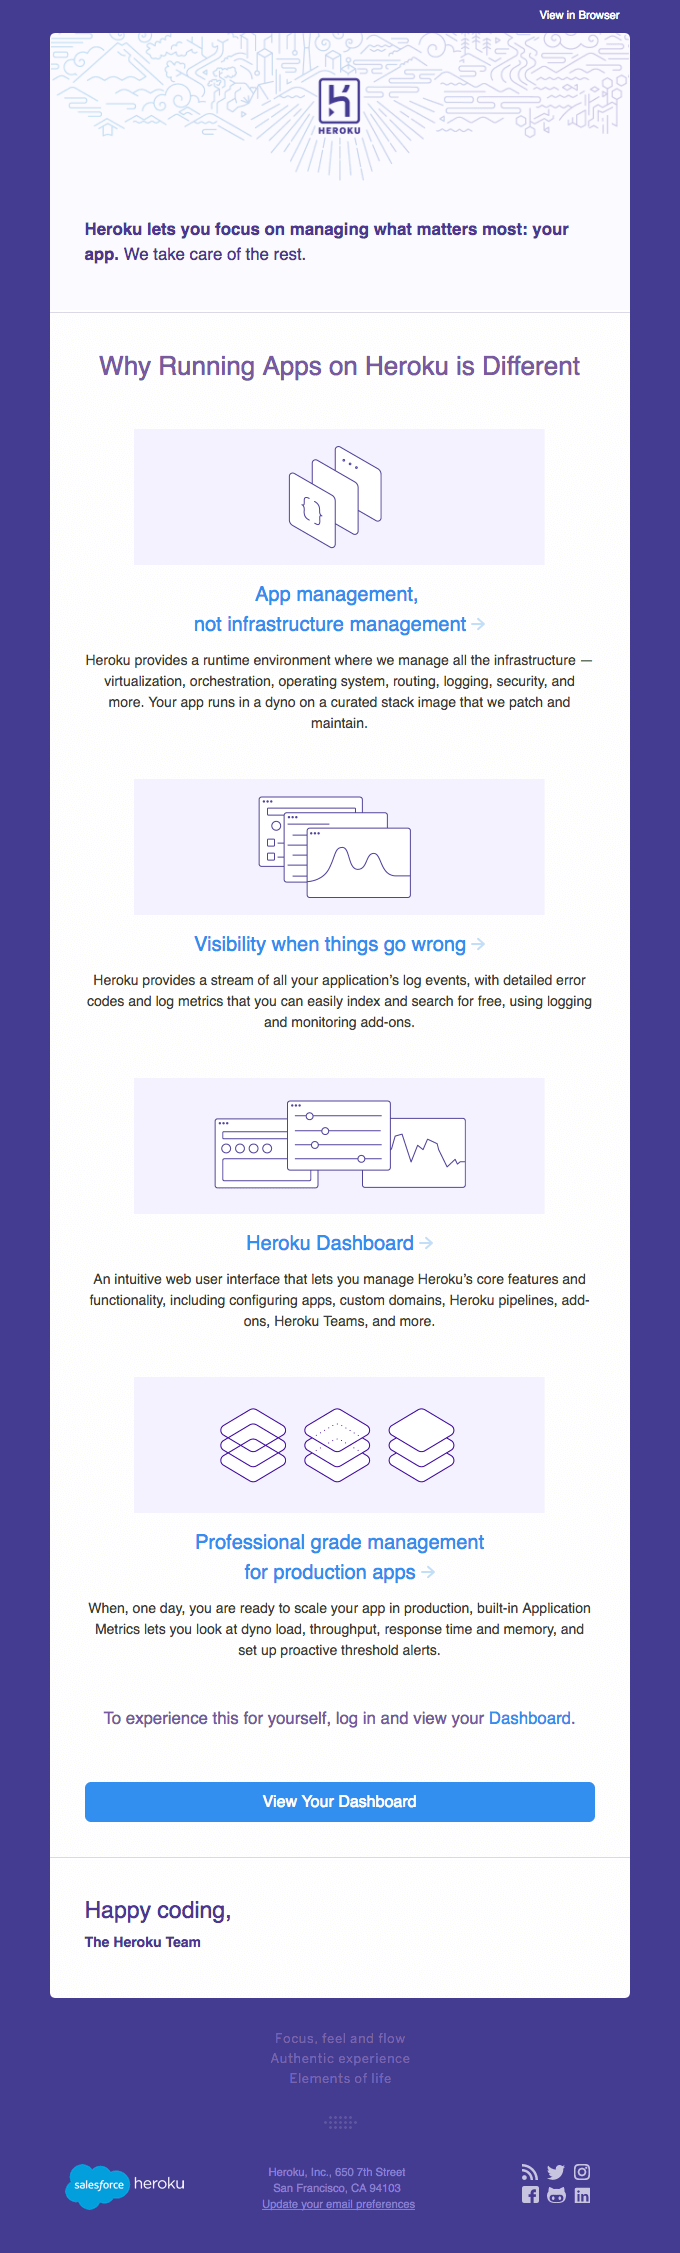 heroku retention email